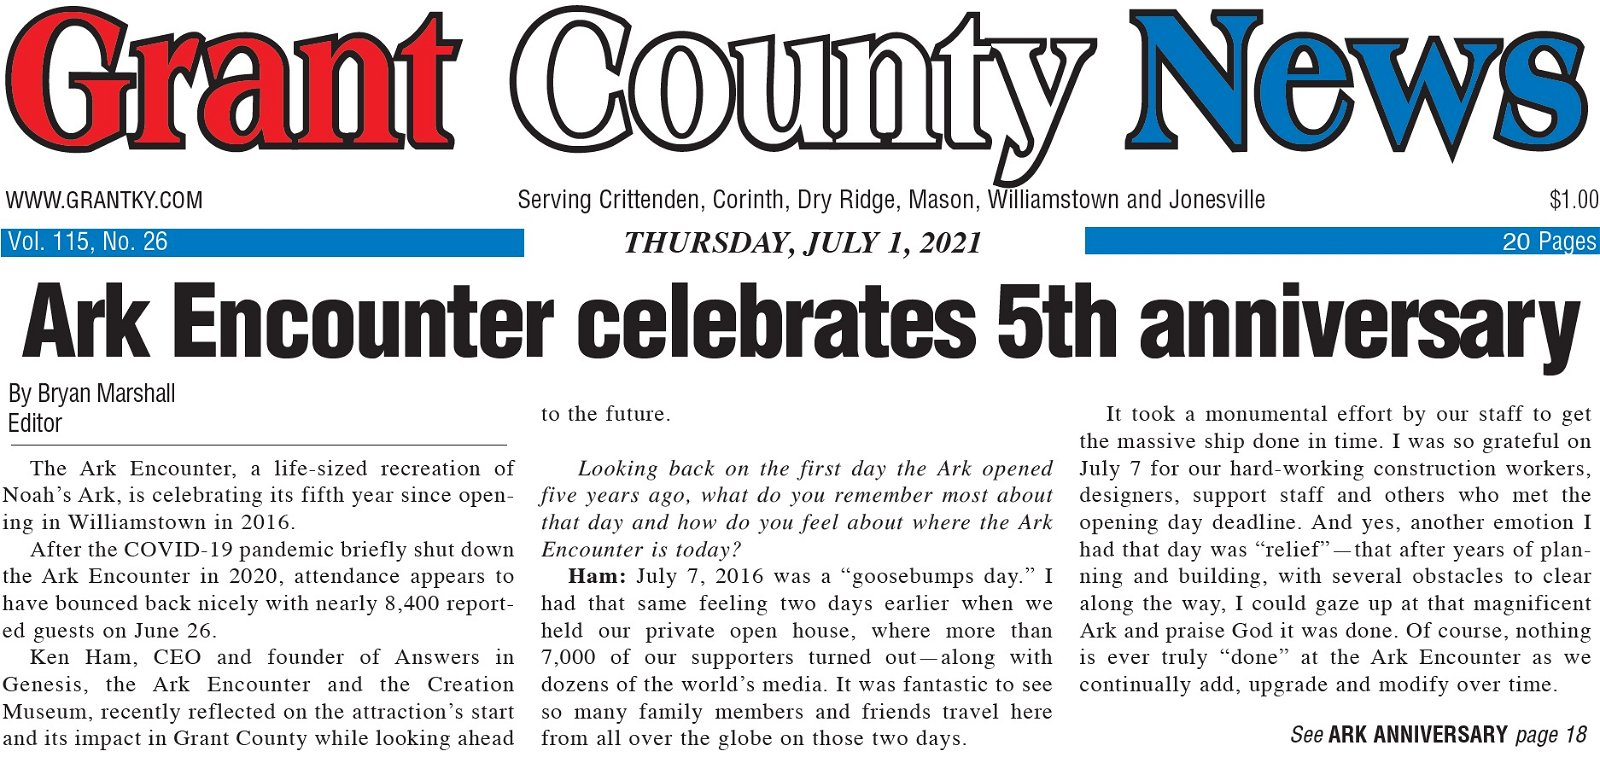 Grant County News story